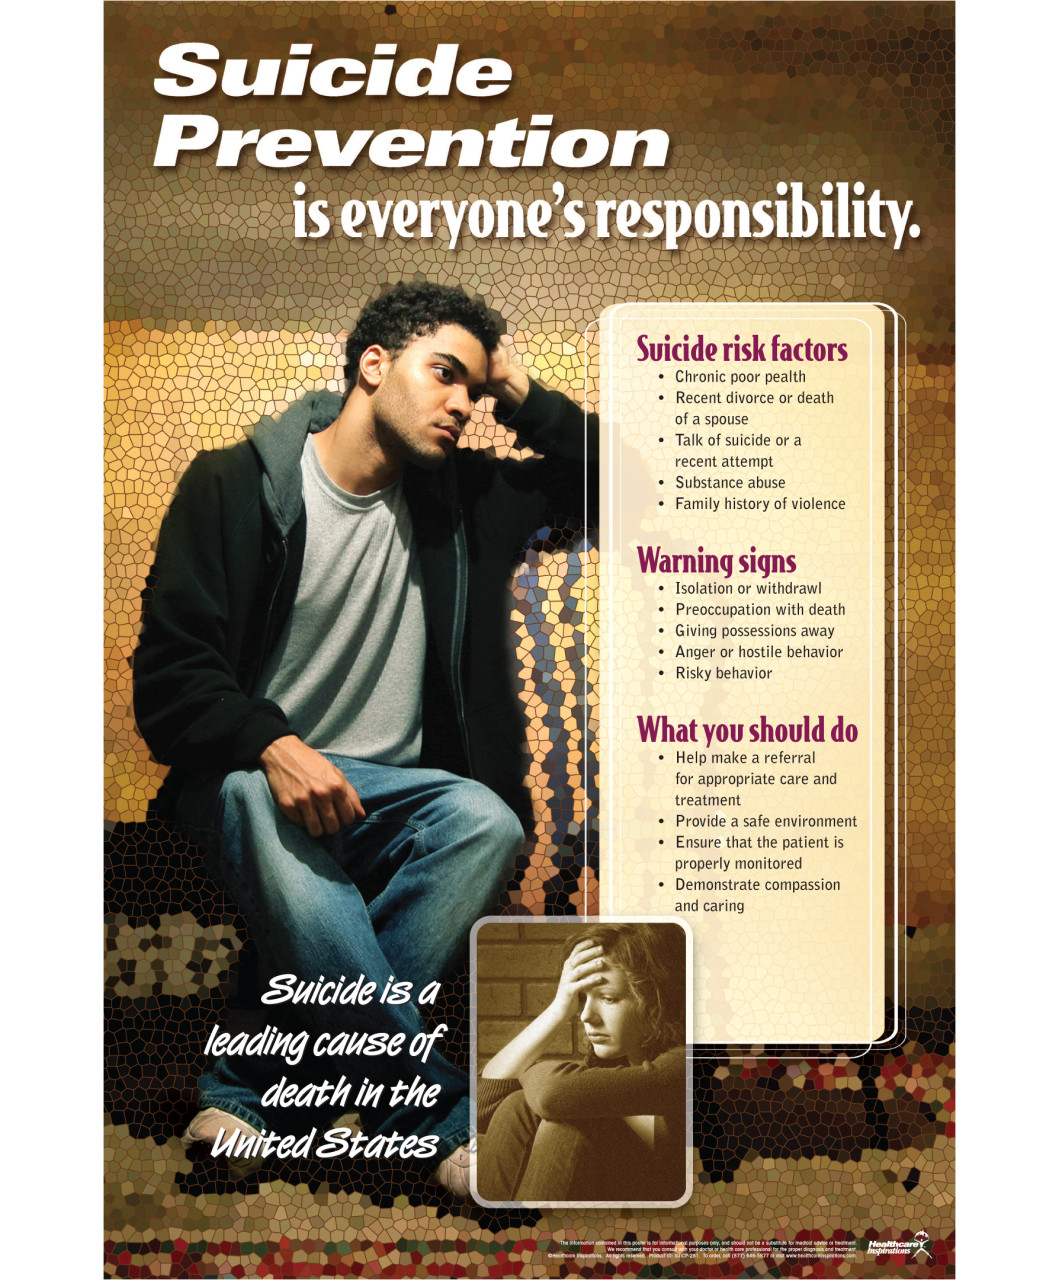 Suicide Prevention Campaign Posters Pictures to Pin on ...